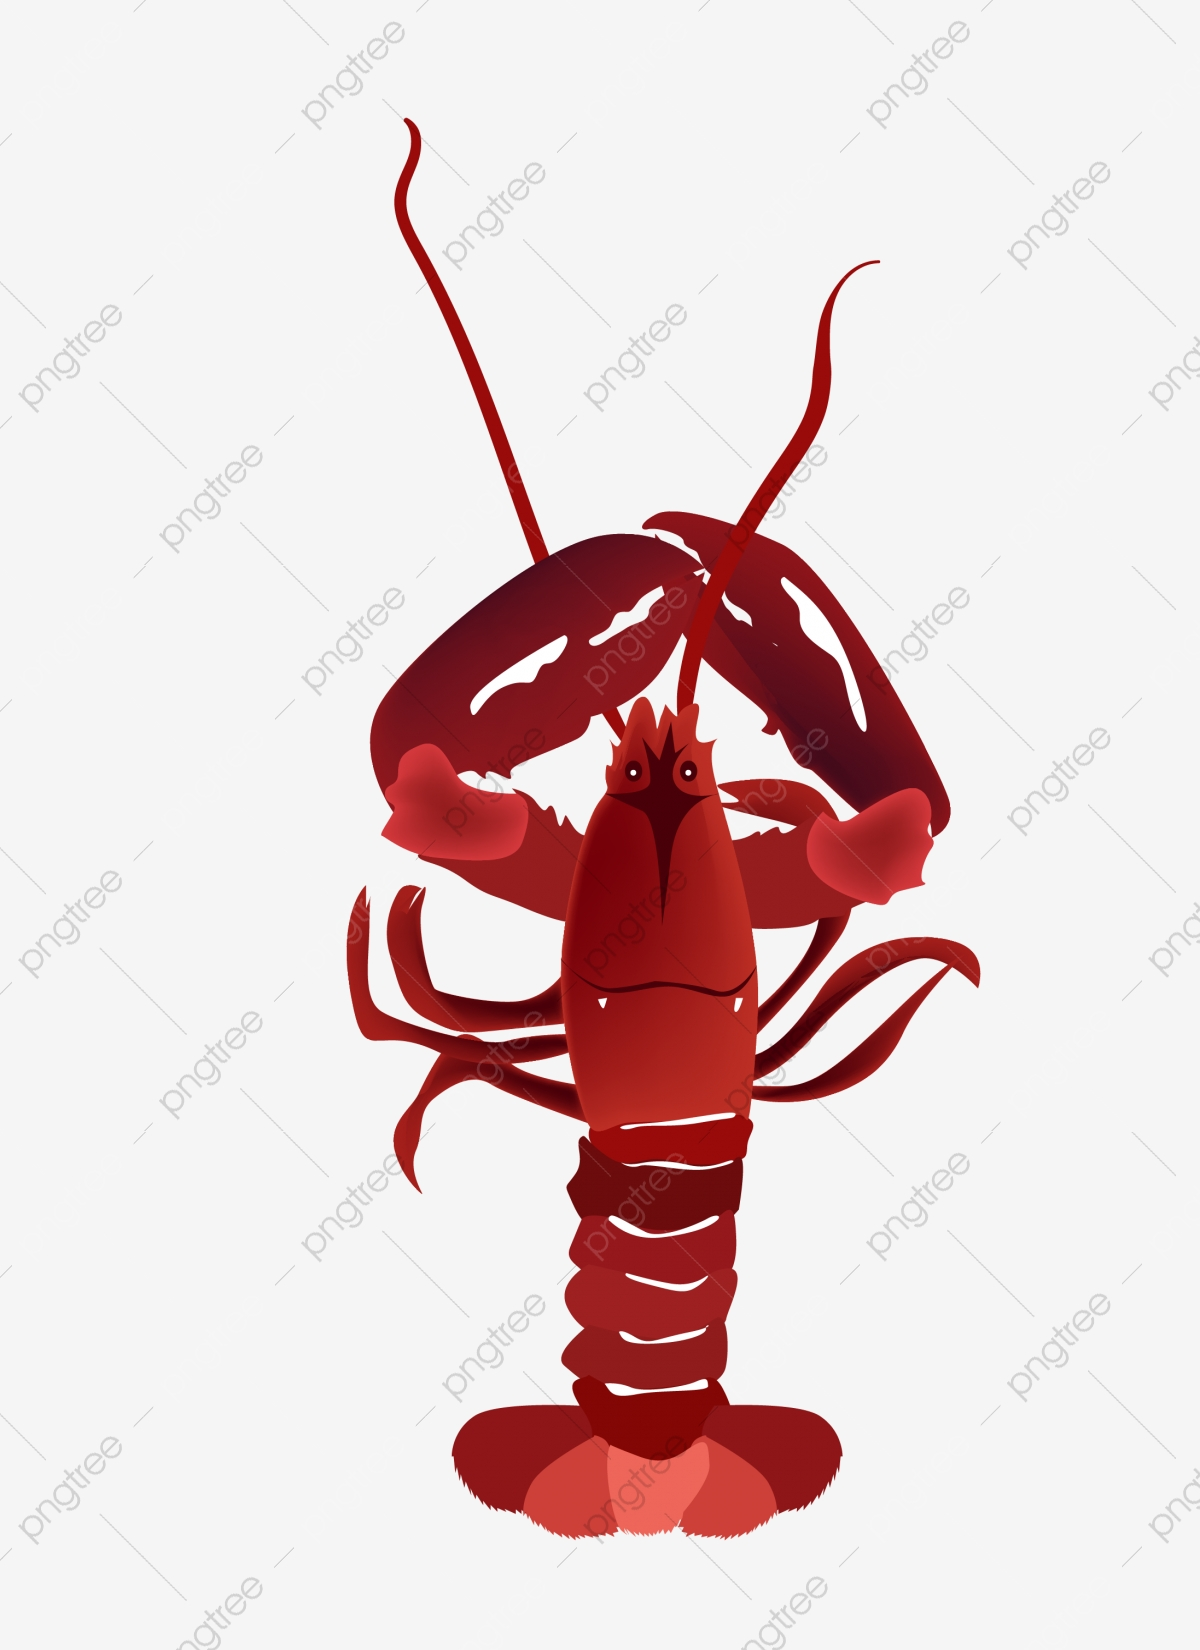 Live Shrimp Aquatic Seafood Lobster Seafood Live Shrimp Aquatic Products Png And Vector With Transparent Background For Free Download